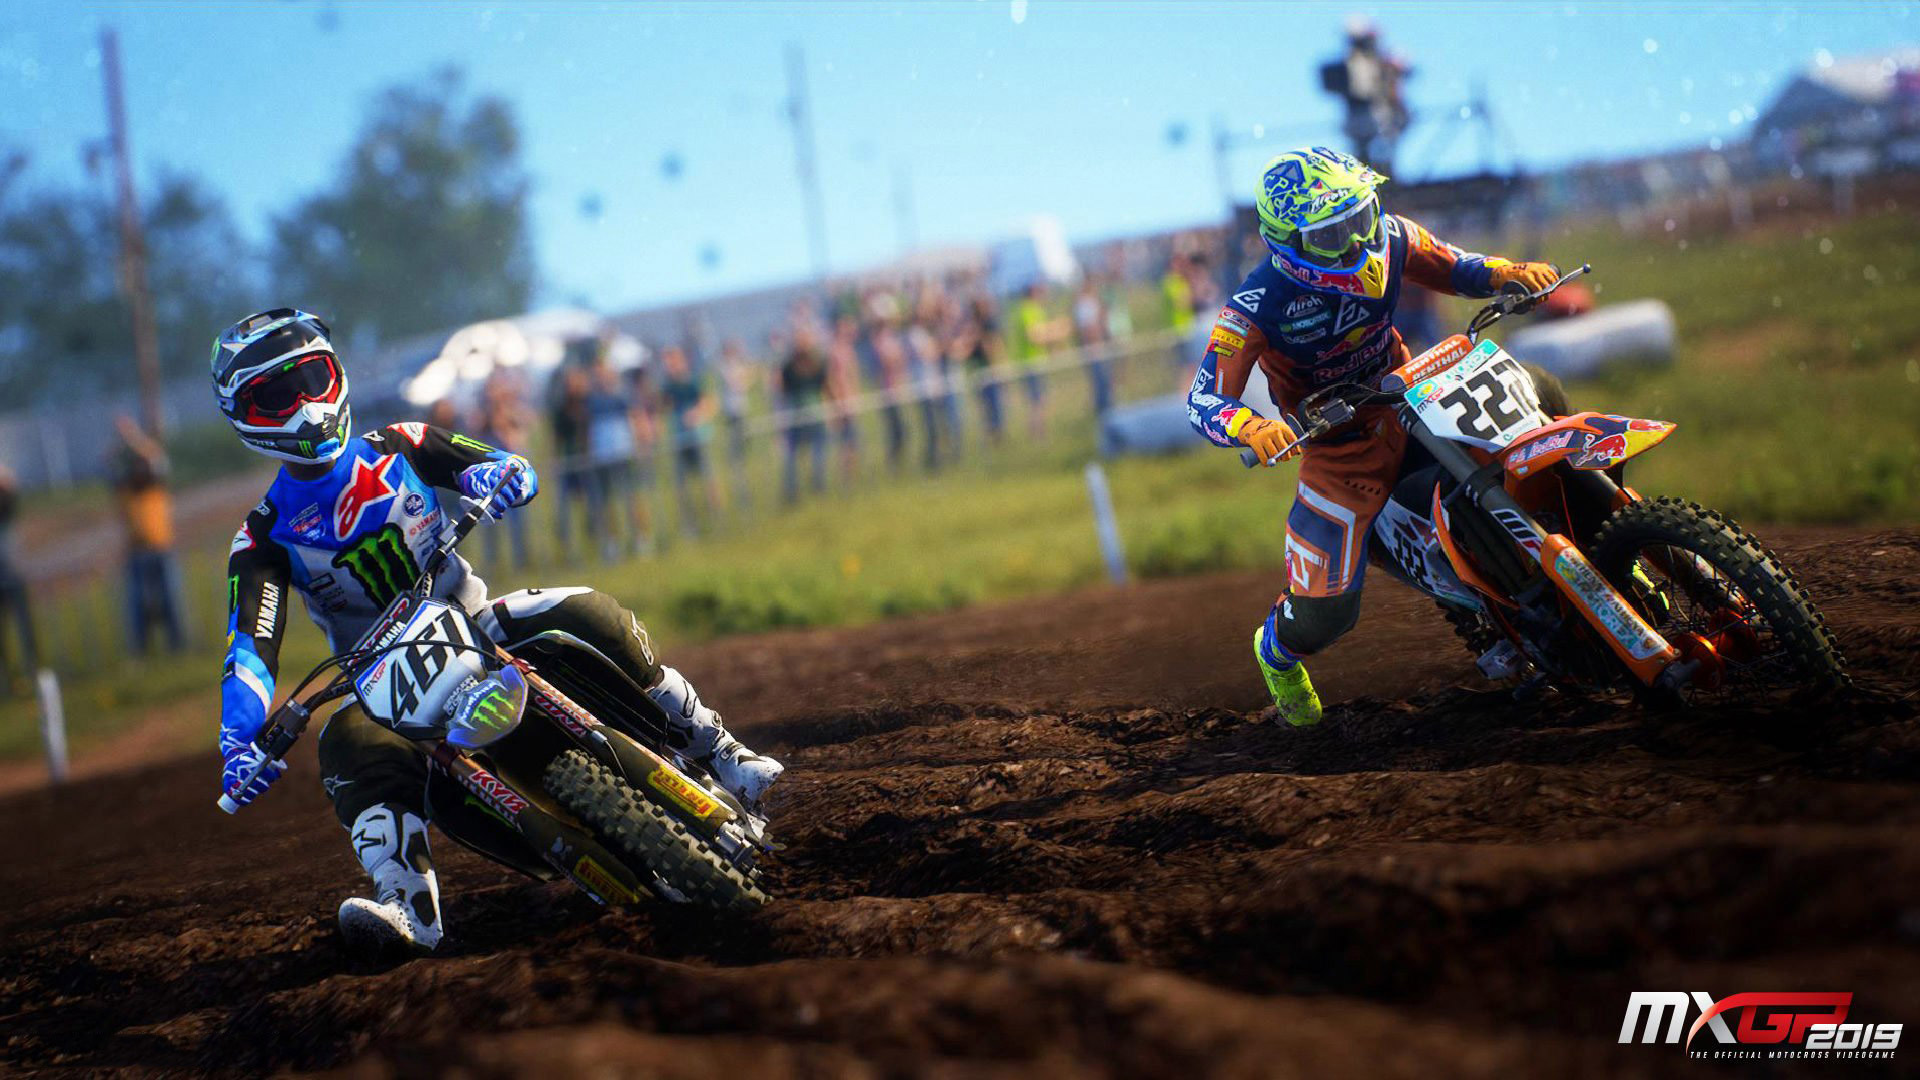 Free MXGP 2019 Wallpaper in 1920x1080